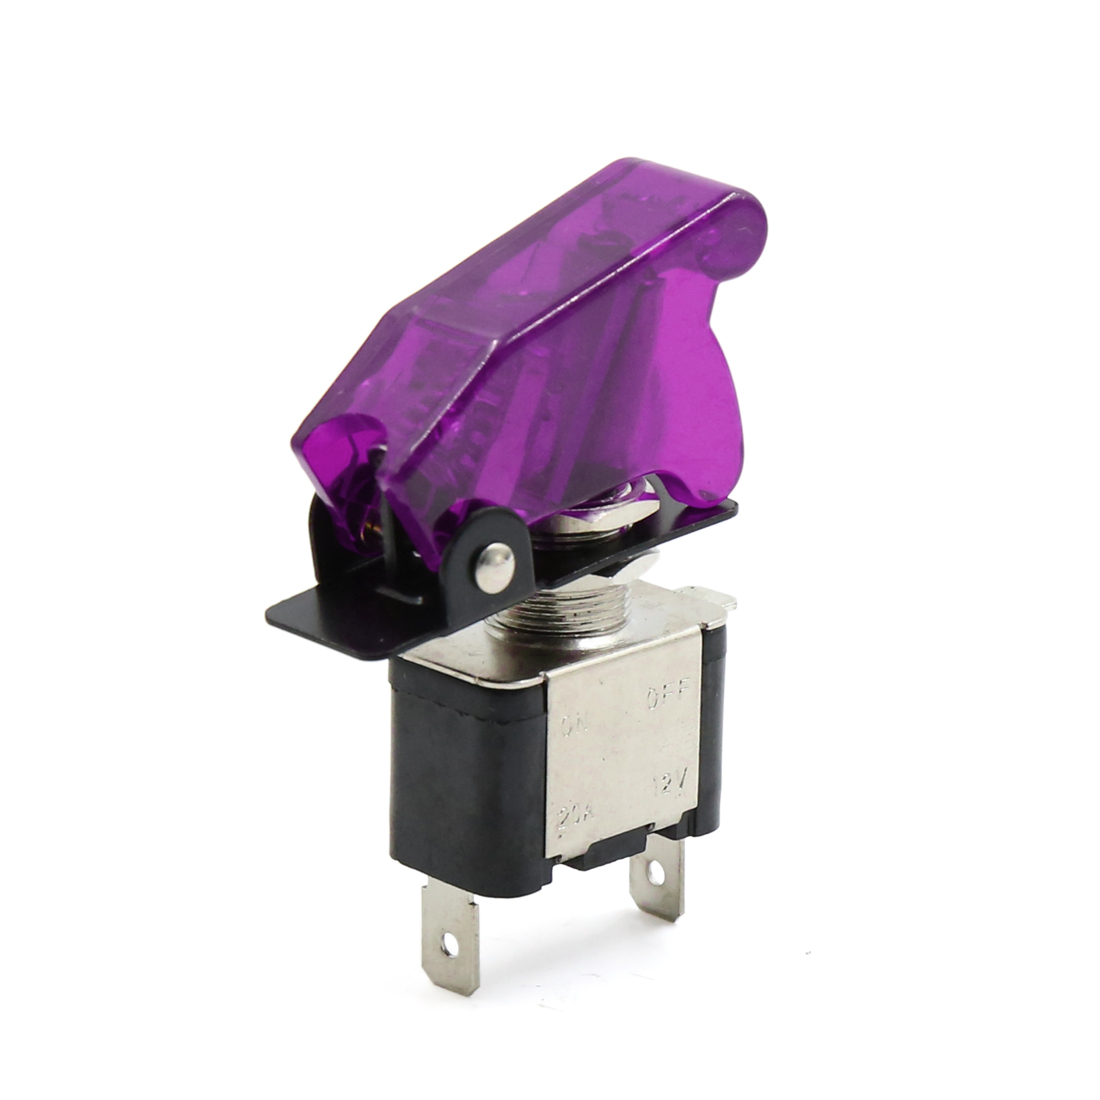 Universal DC 12V Purple Safety Cover SPST Toggle ON/OFF Control Switch w Light - image 3 of 3